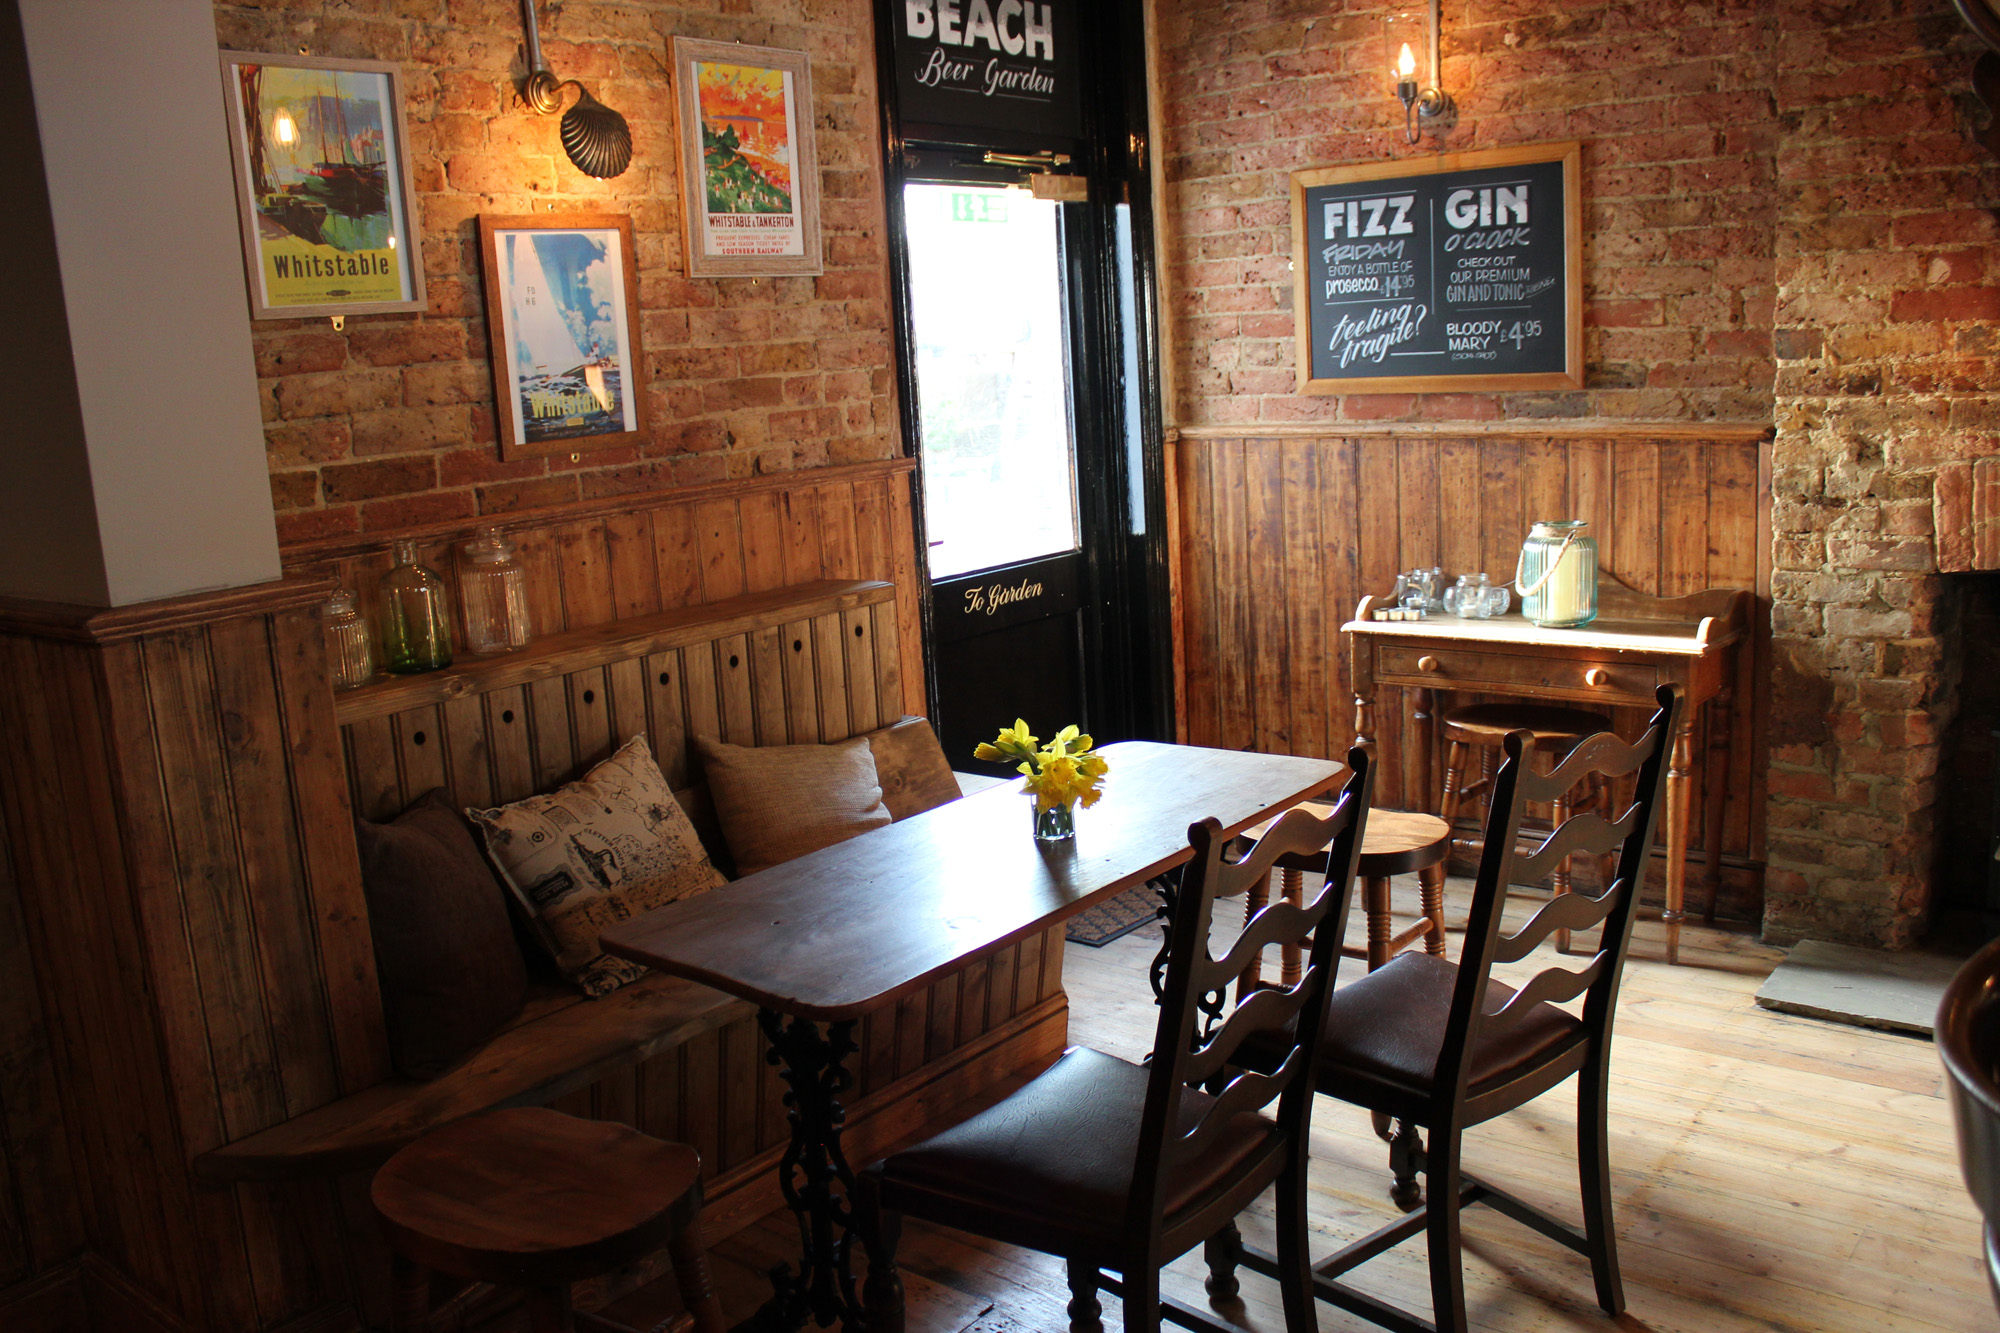 Food and drink at the Smack Inn Whitstable